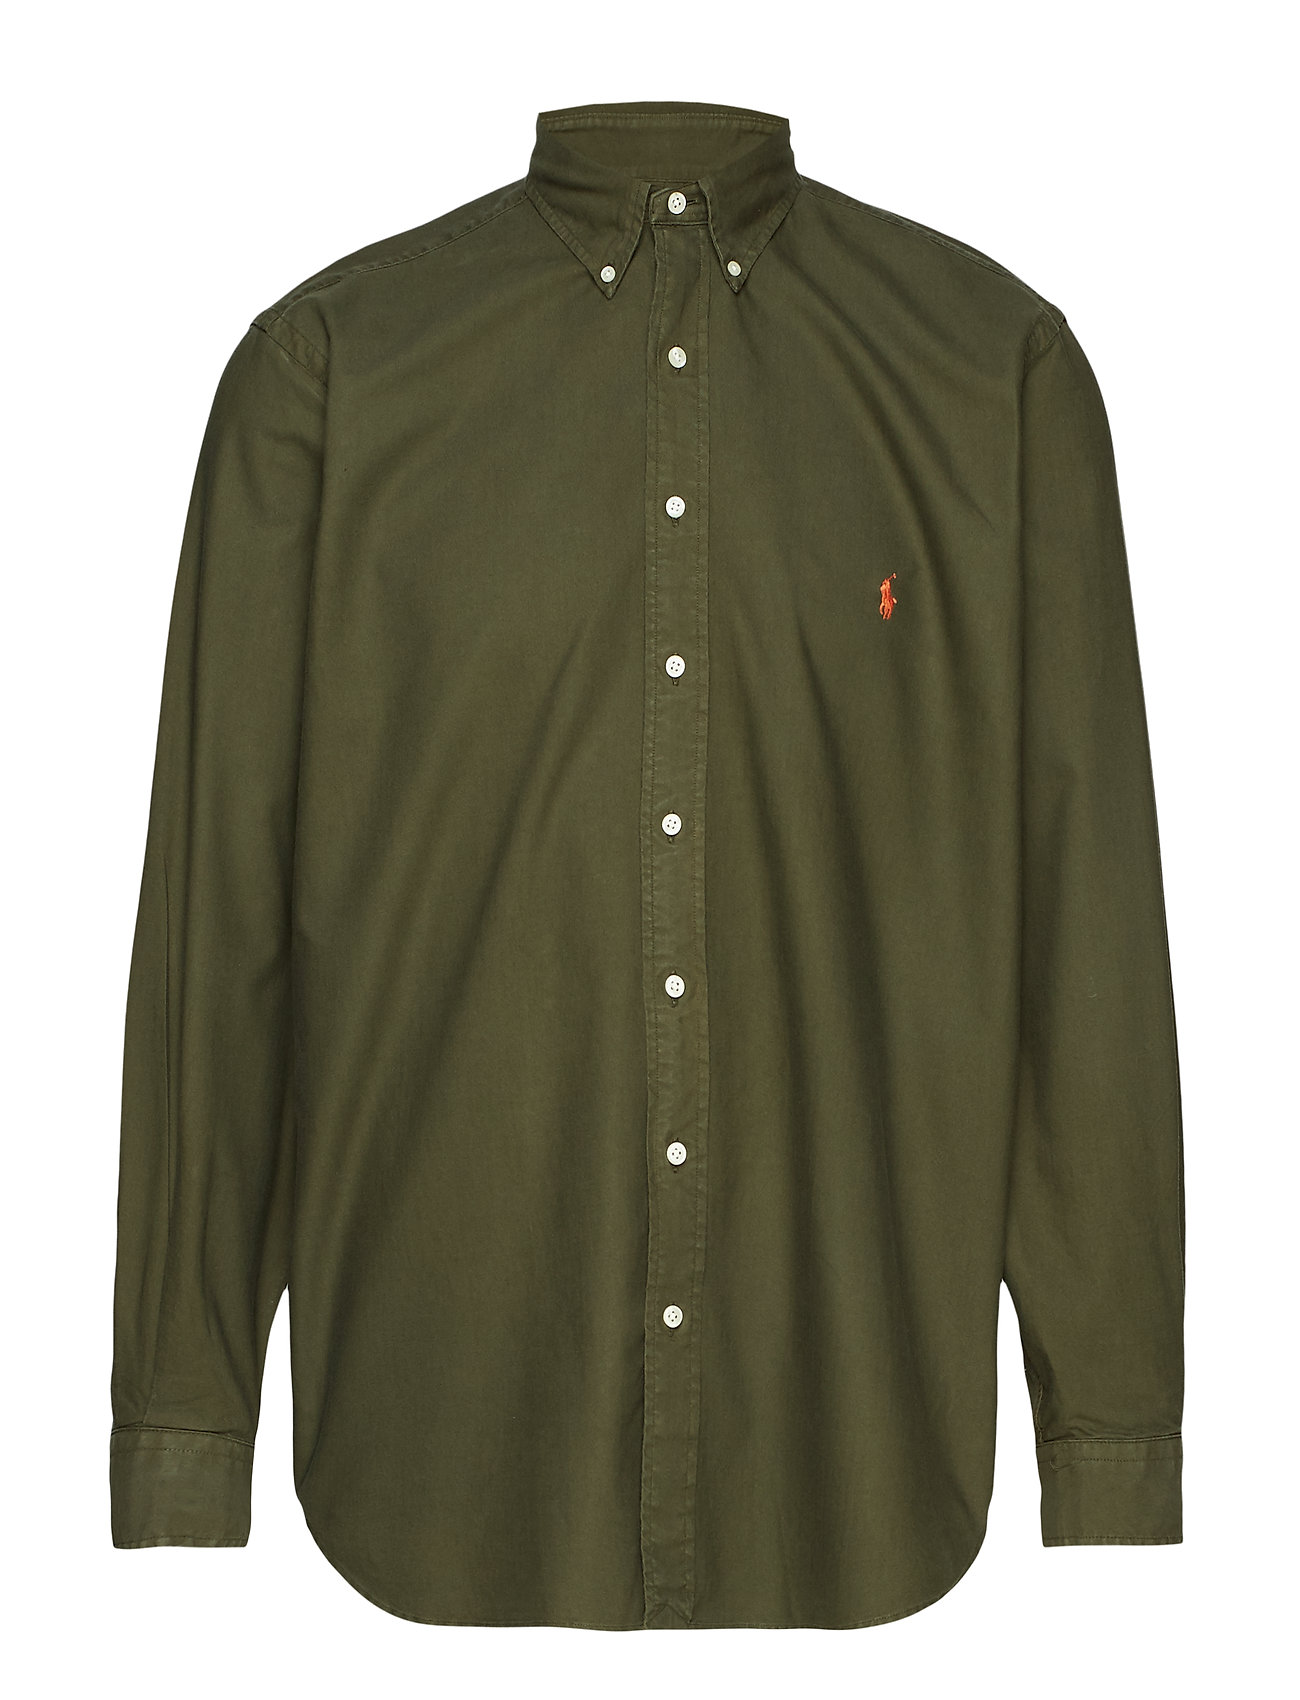 Polo Ralph Lauren Big & Tall Classic Fit Oxford Shirt - COMPANY OLIVE